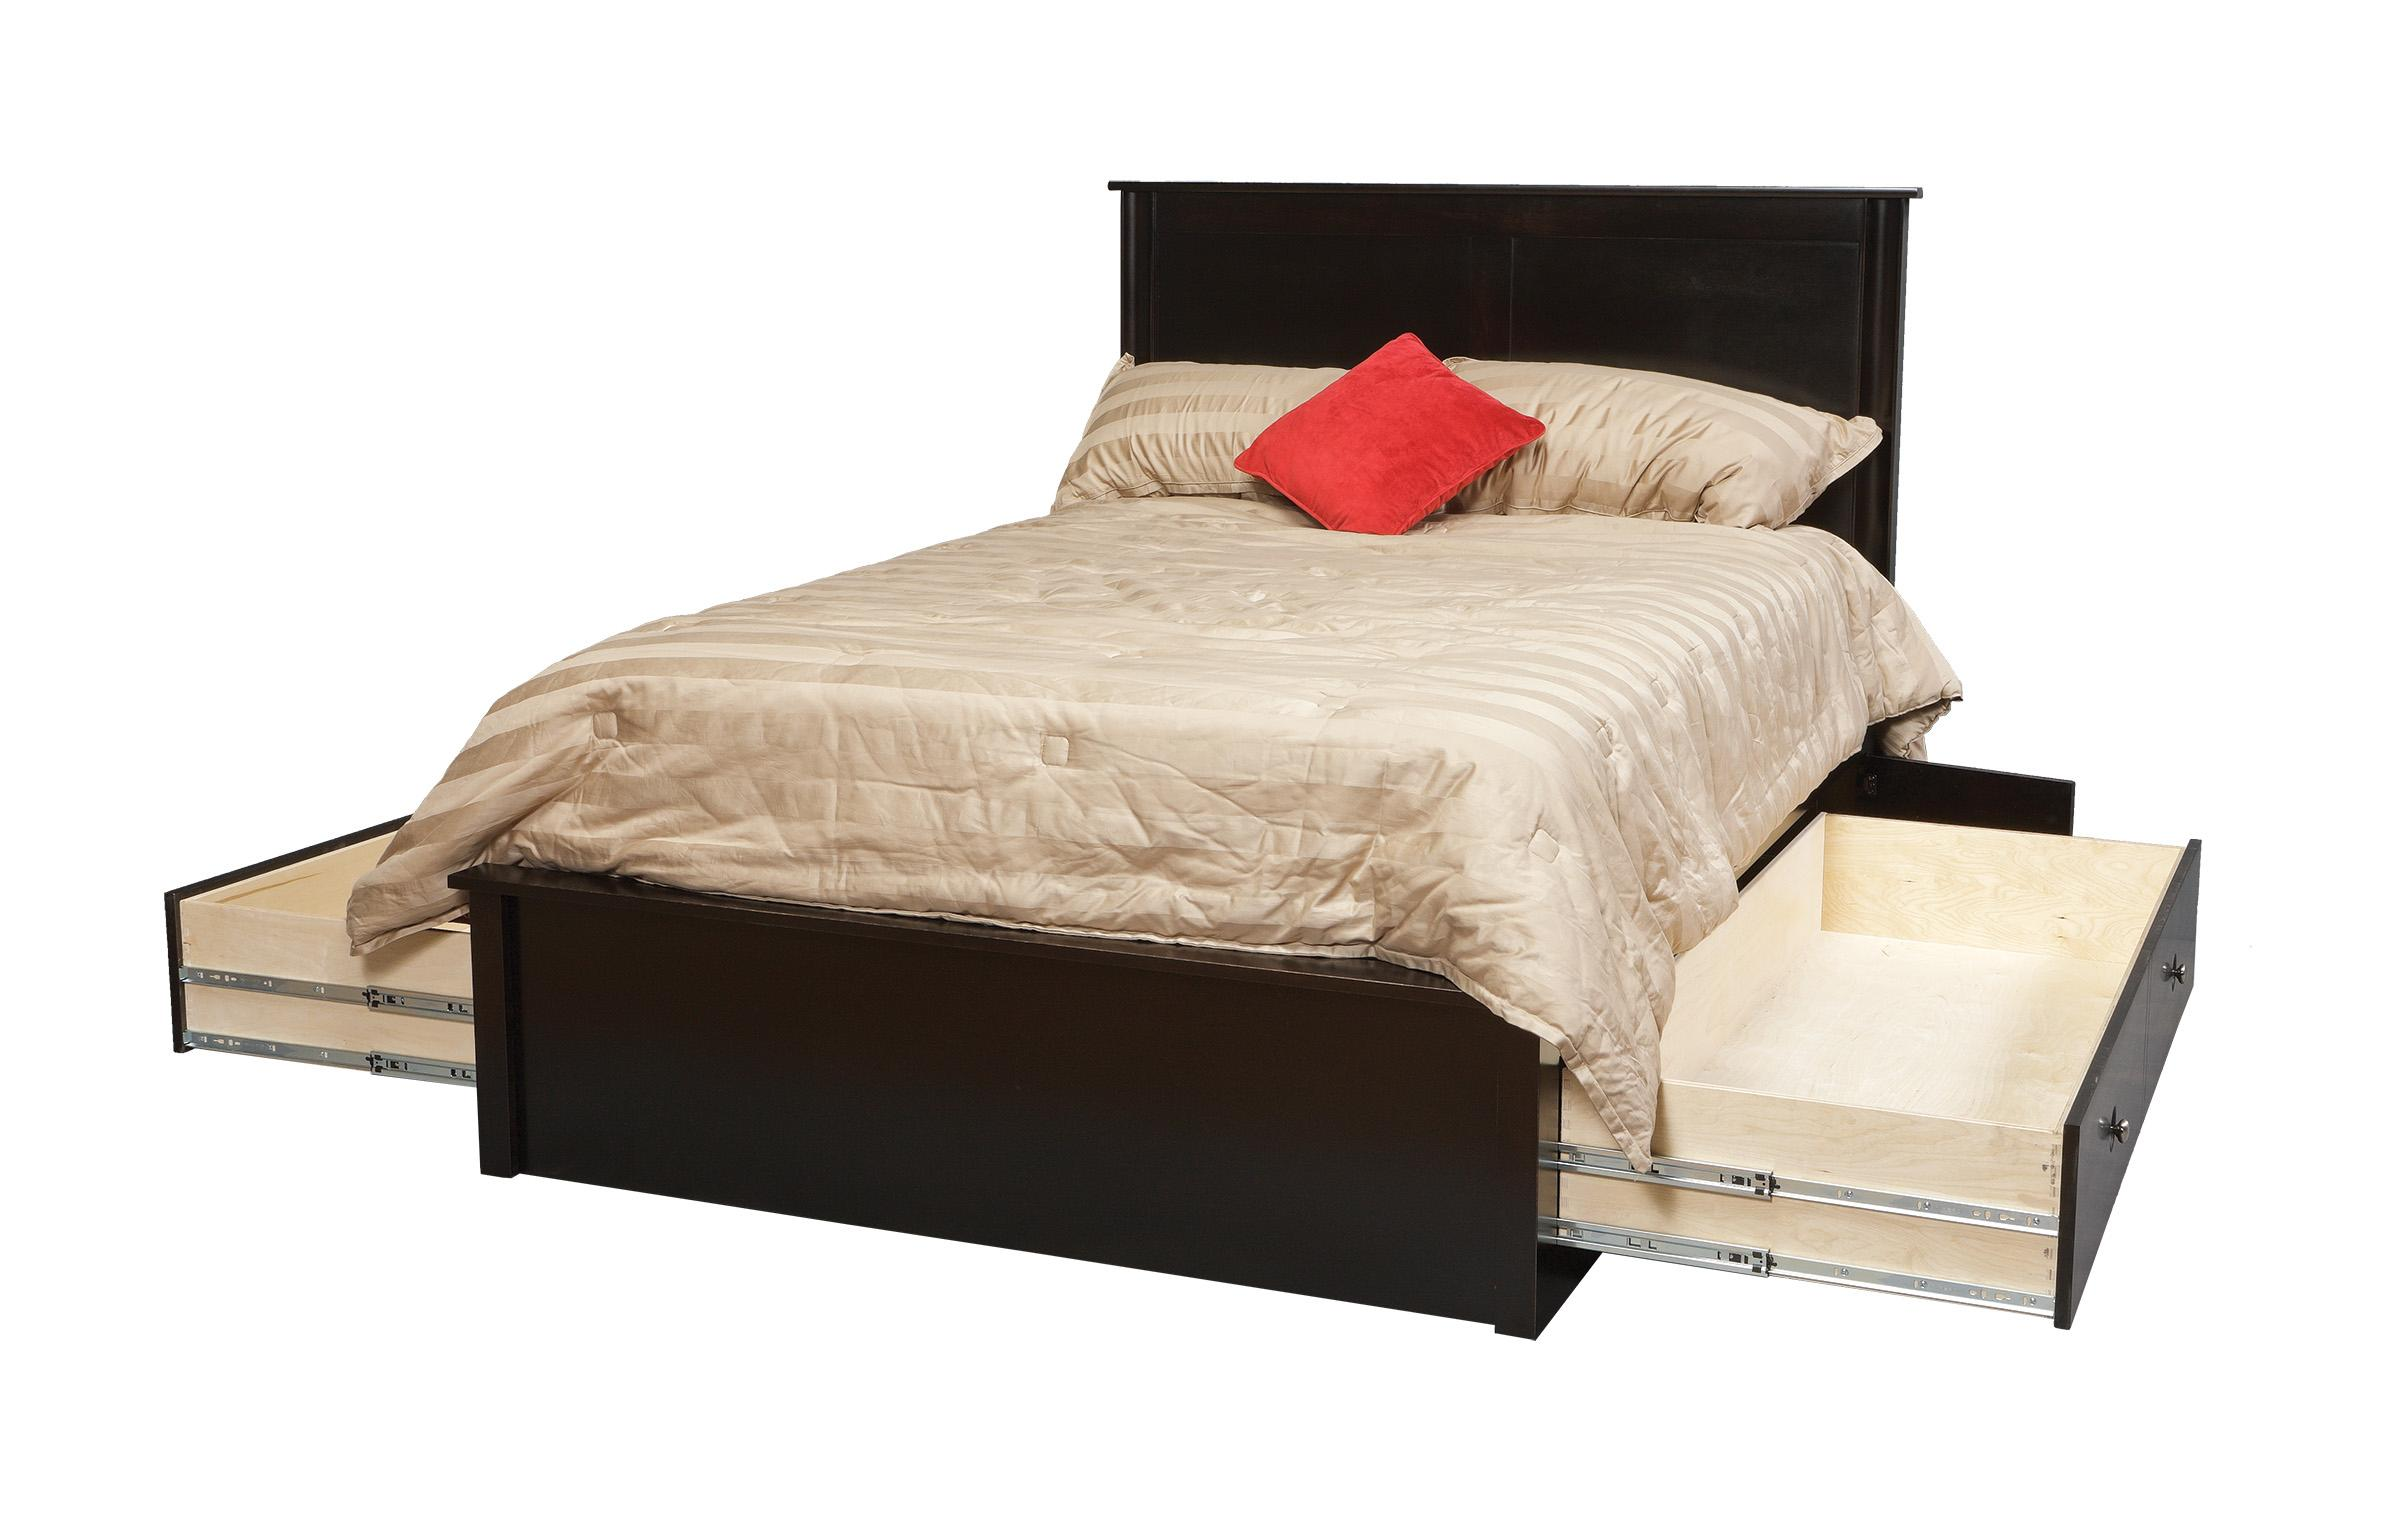 King Pedestal Bed W/ Storage Drawers